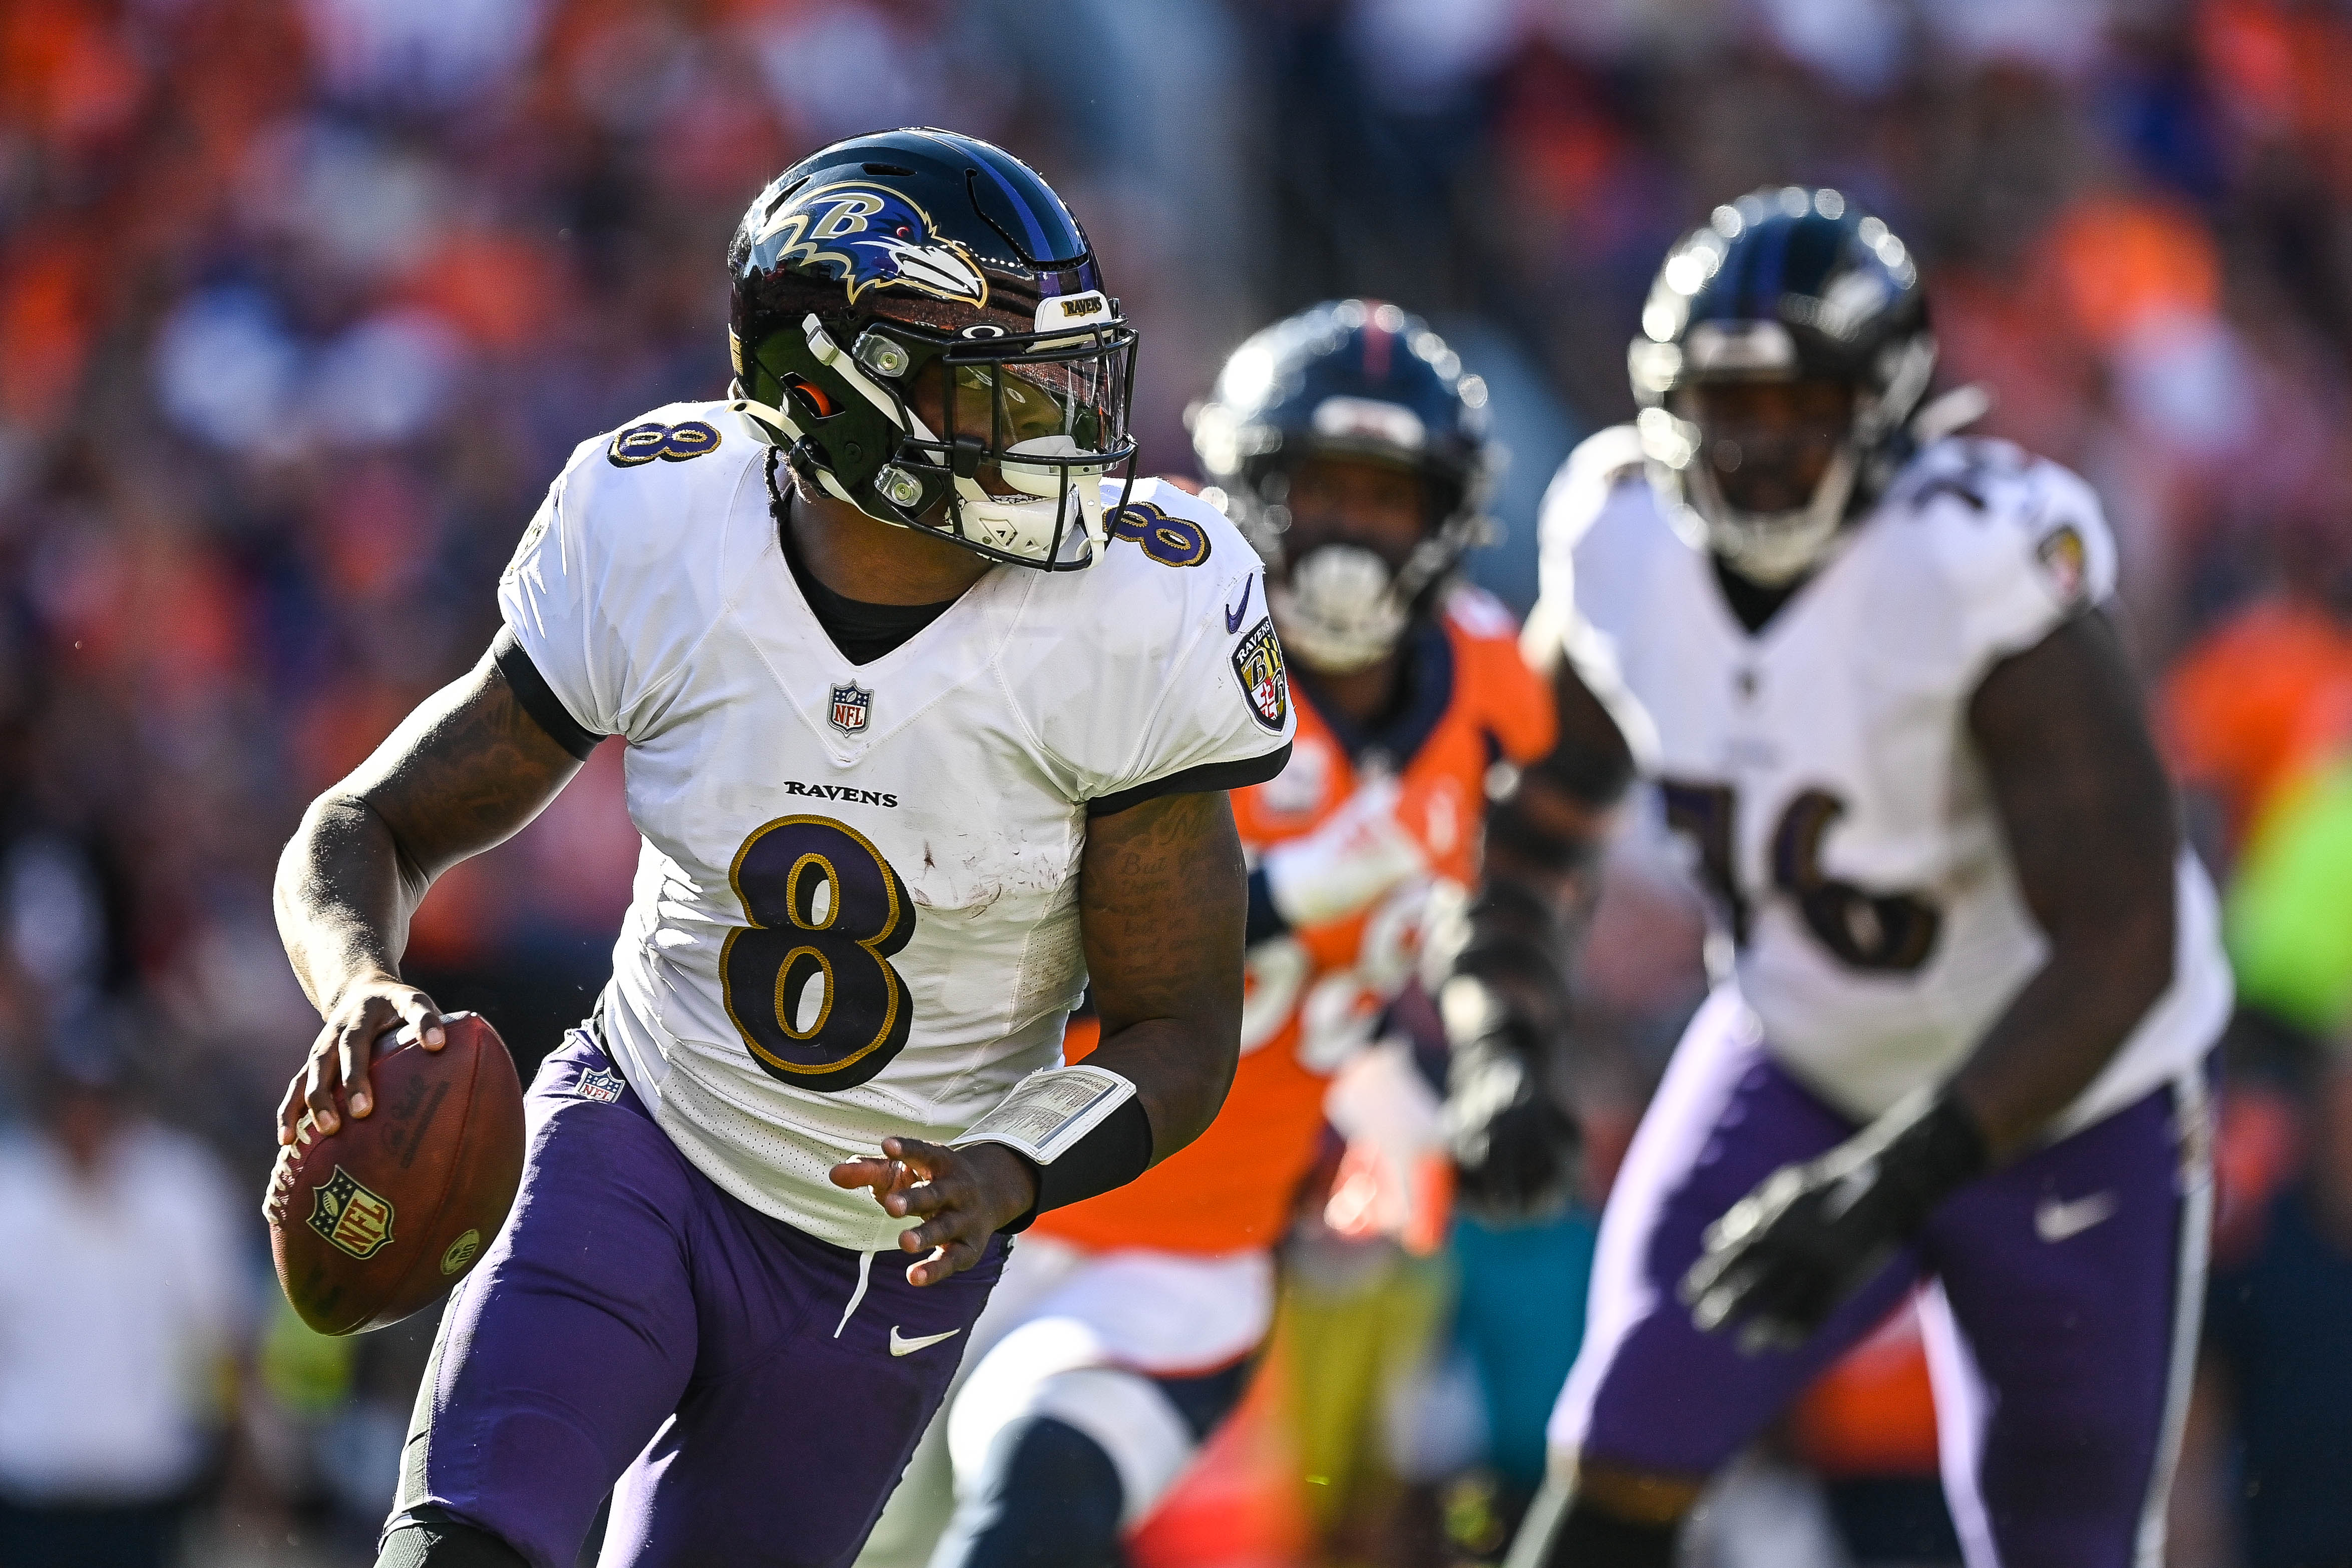 Lamar Jackson #8 of the Baltimore Ravens rolls out of the pocket in the third quarter of a game against the Denver Broncos at Empower Field at Mile High on October 3, 2021 in Denver, Colorado.